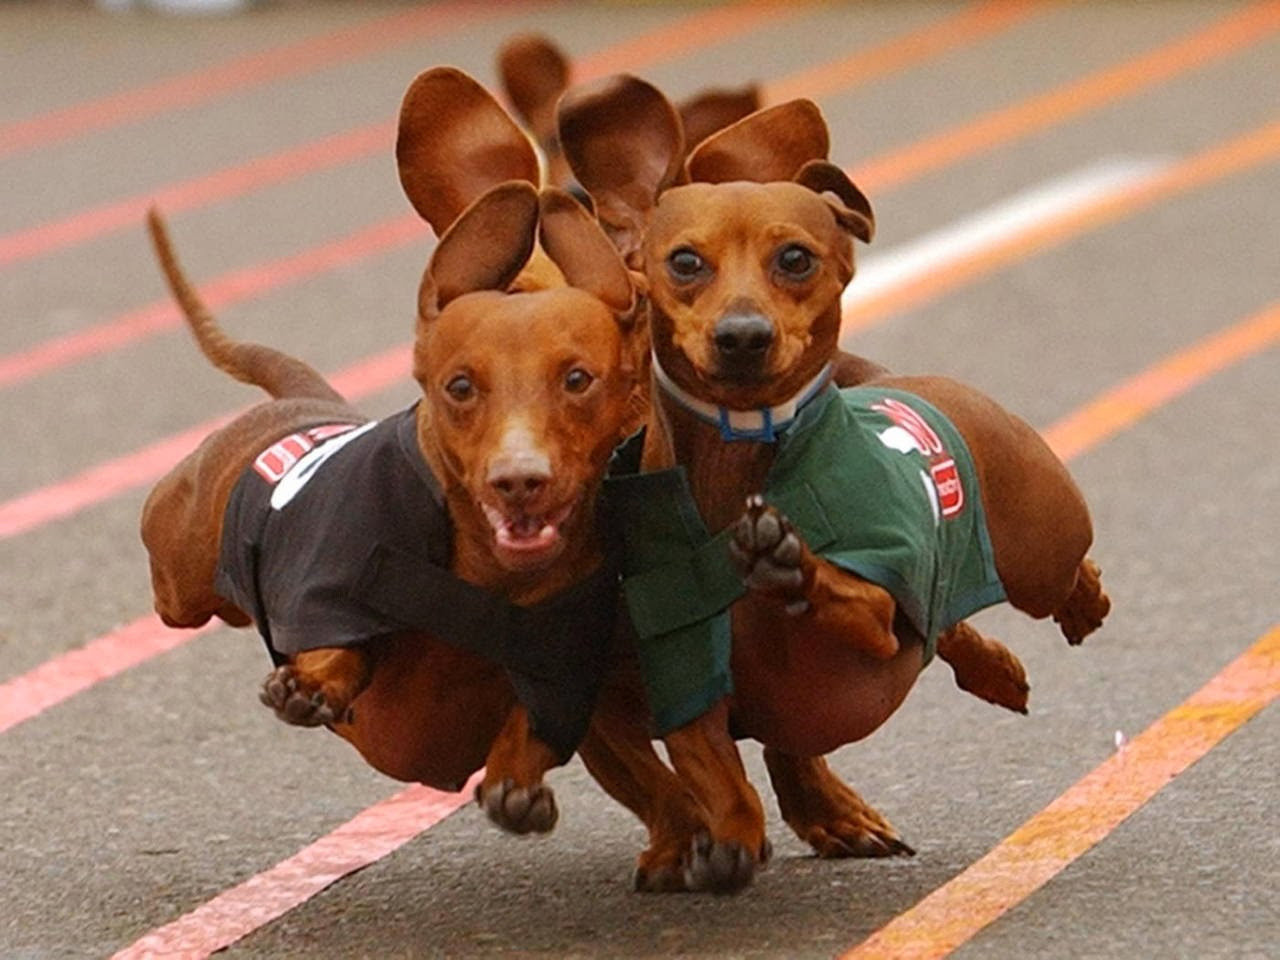 Cute dogs - part 8 (50 pics), wiener dogs running